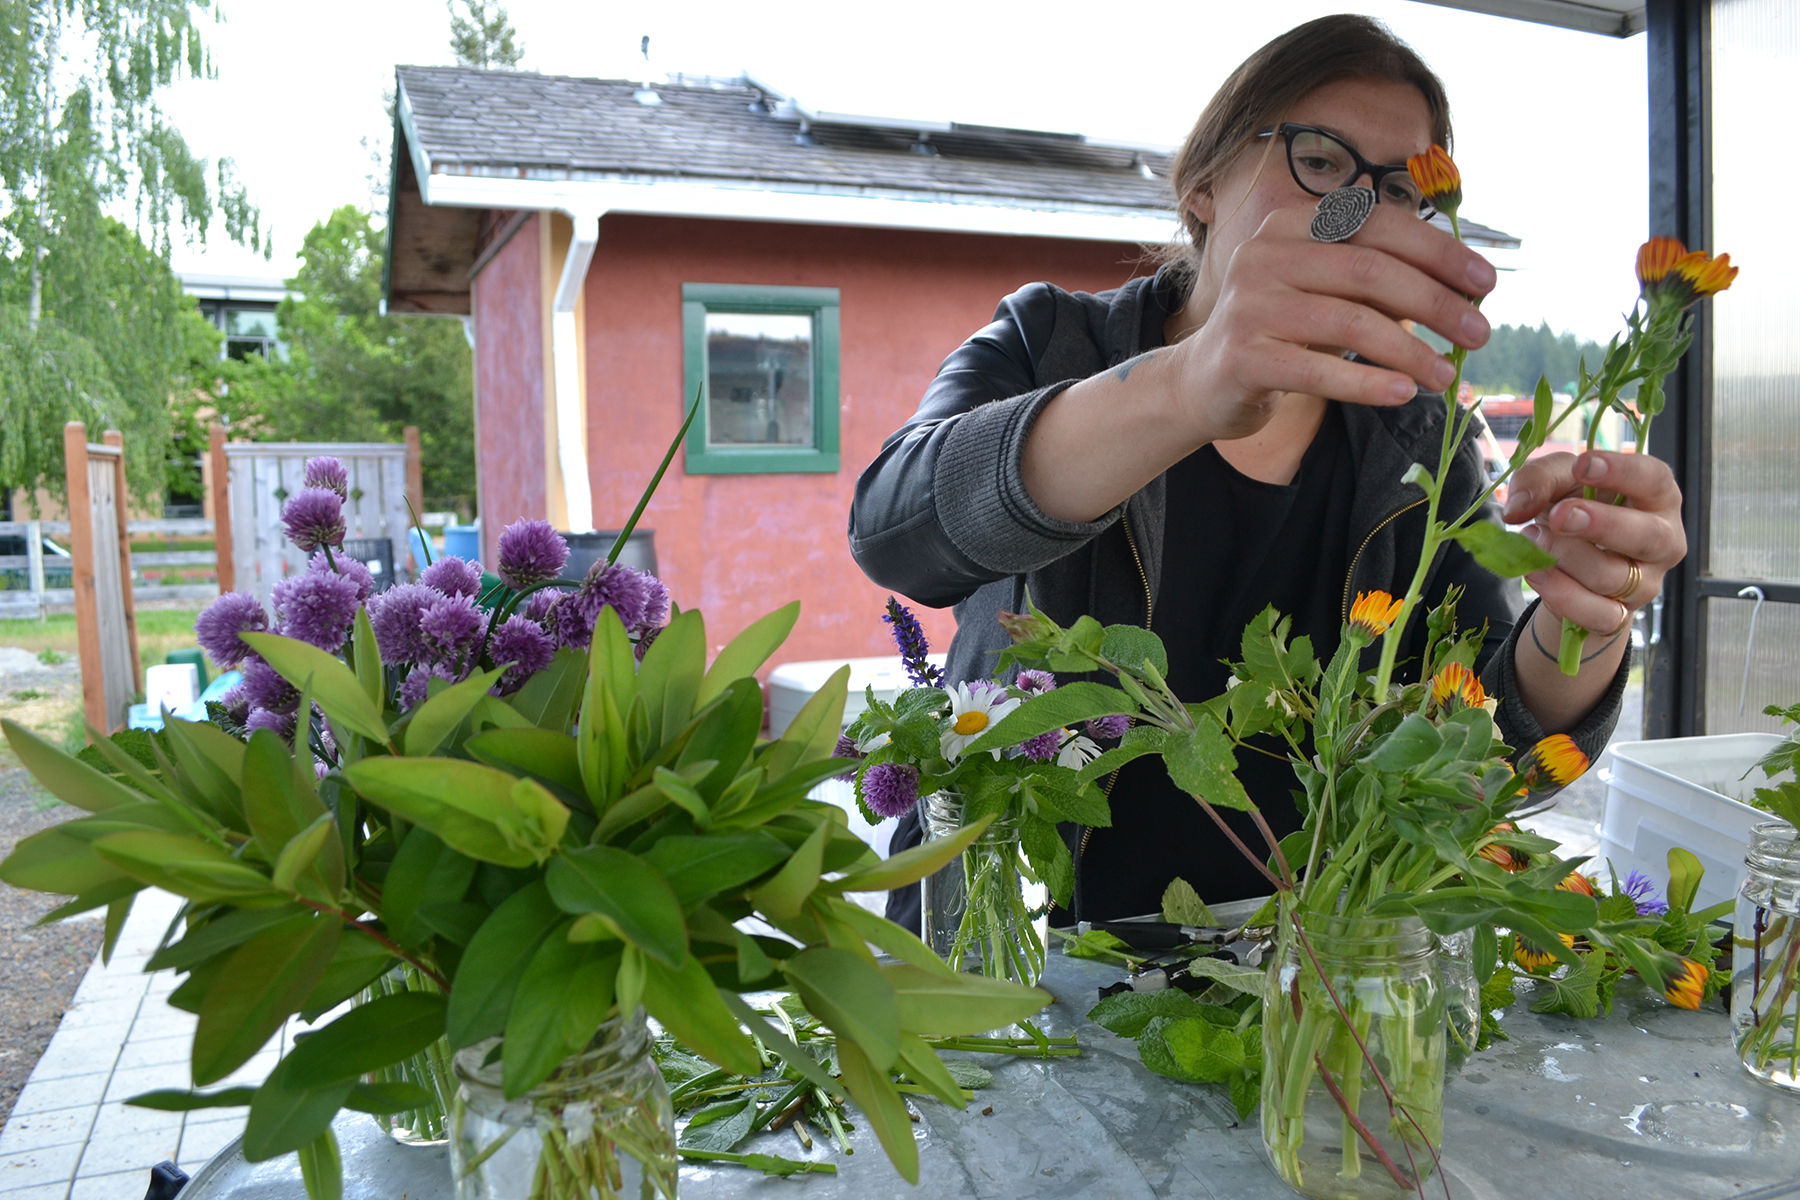 As Lindsey learned more about flowers and came to love them, she has re-aligned her professional and personal interests to focus on the spiritual qualities of flowers, rather than their horticultural aspects.